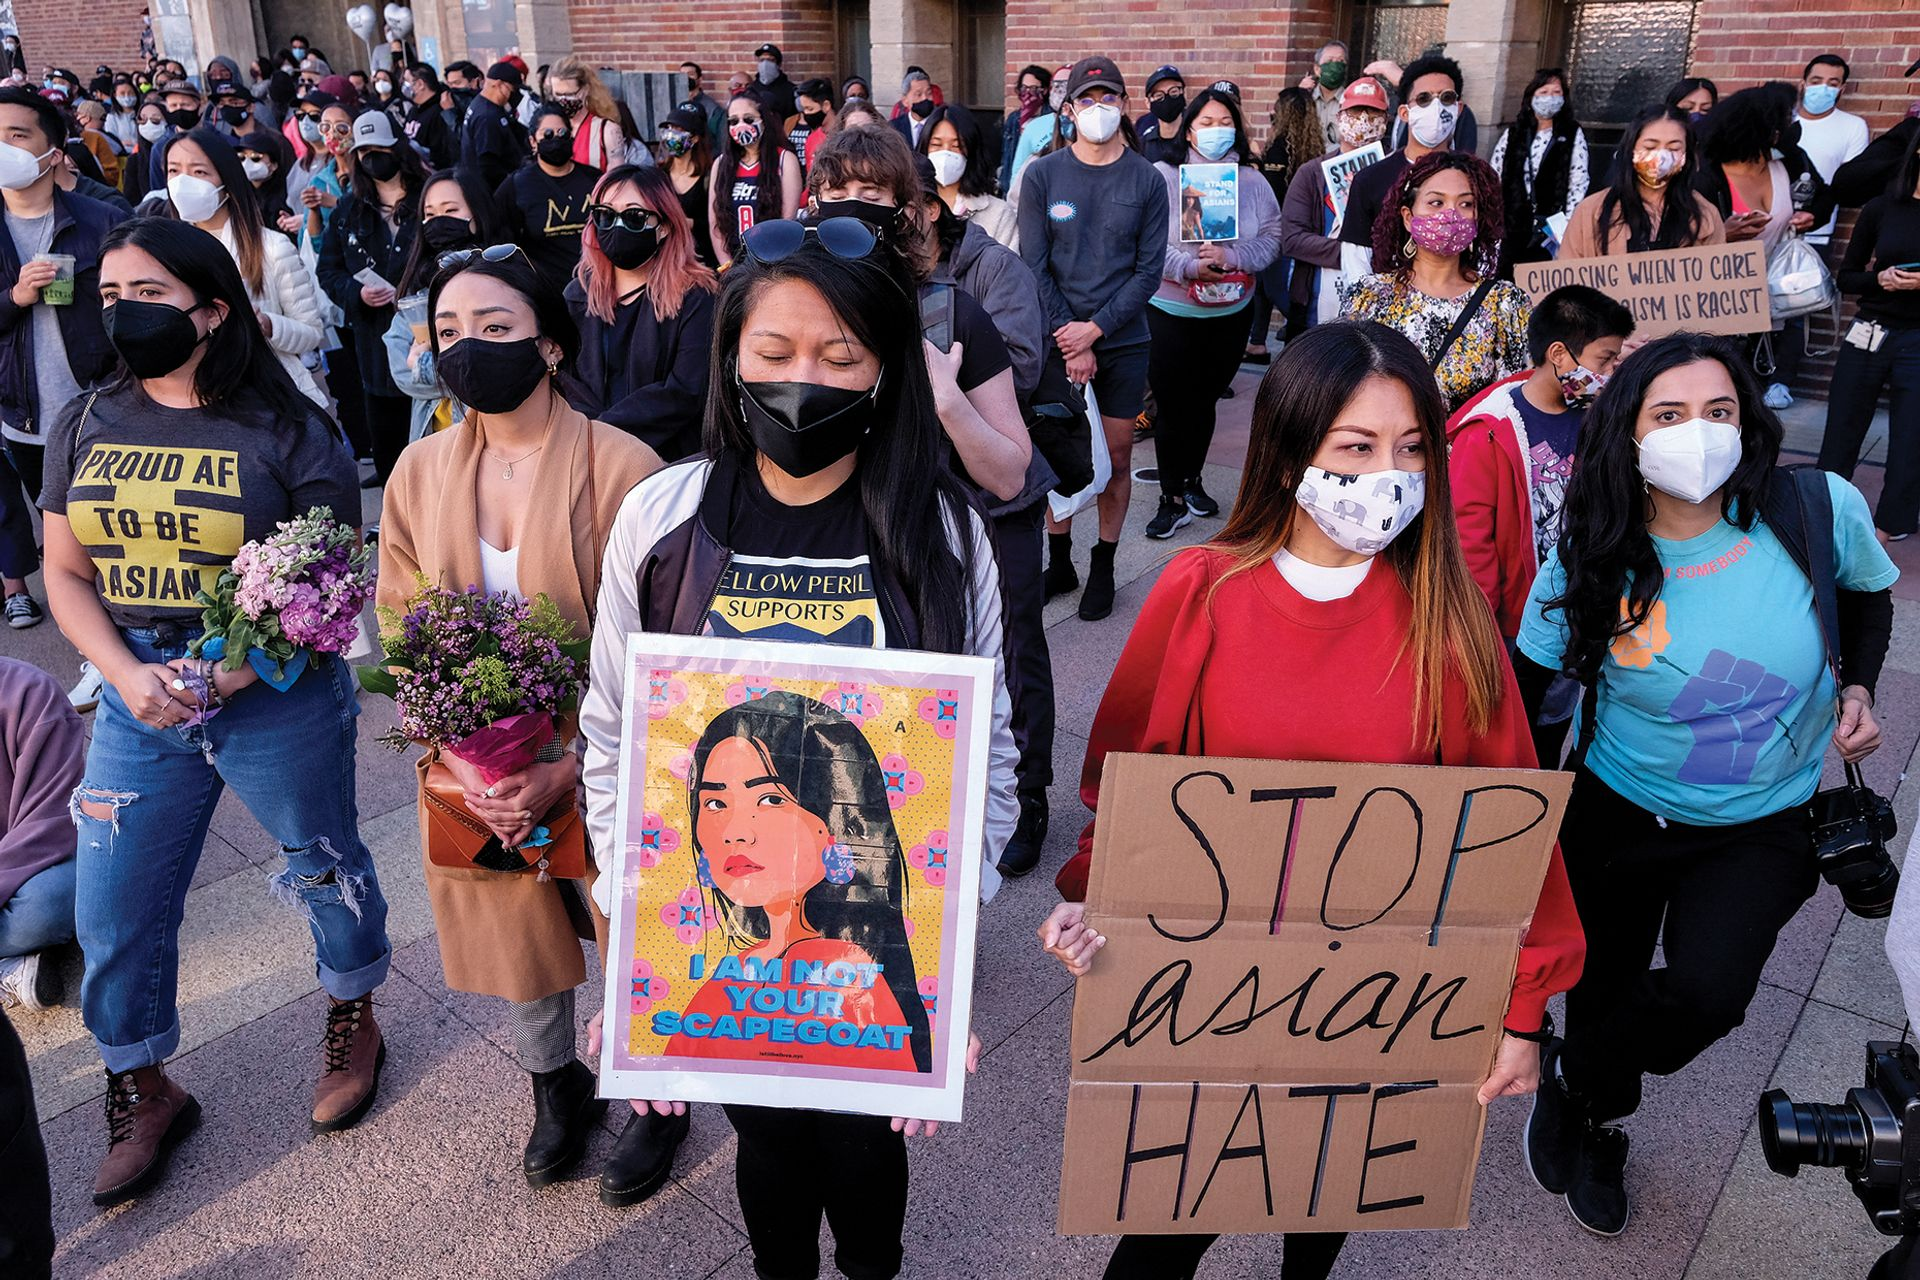 Demonstrators take part in a rally to raise awareness of anti-Asian violence at the Japanese American National Museum in Little Tokyo in Los Angeles, California, on 13 March Photo: Ringo Chiu/AFP via Getty Images